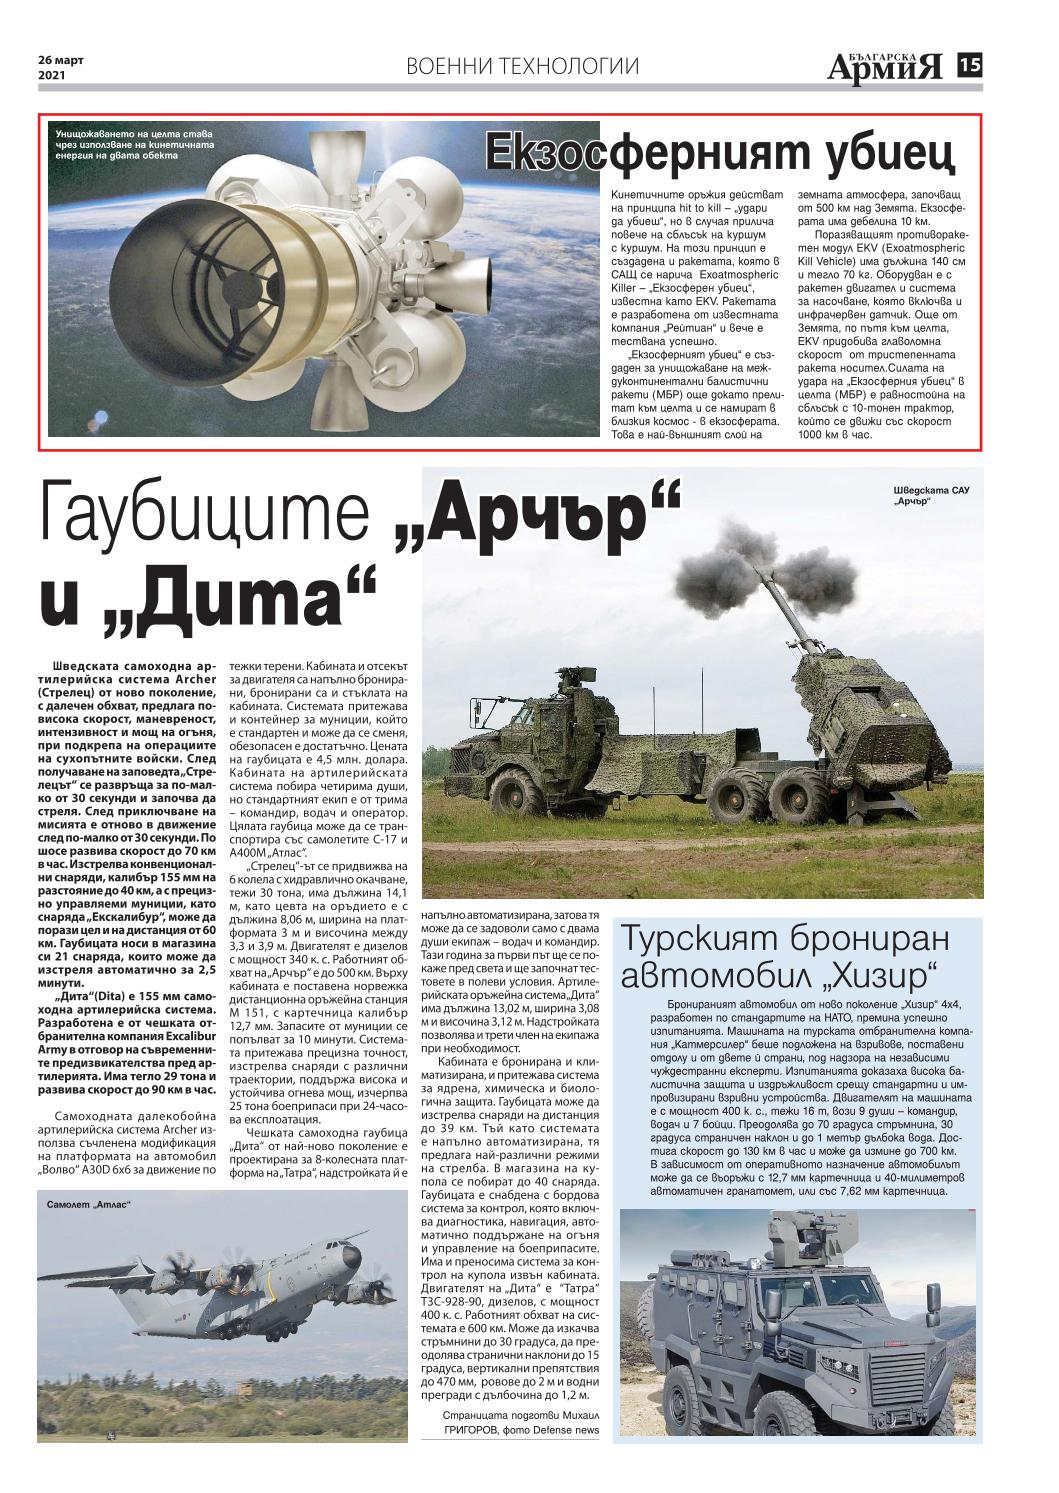 https://armymedia.bg/wp-content/uploads/2021/03/15.page1_-156.jpg